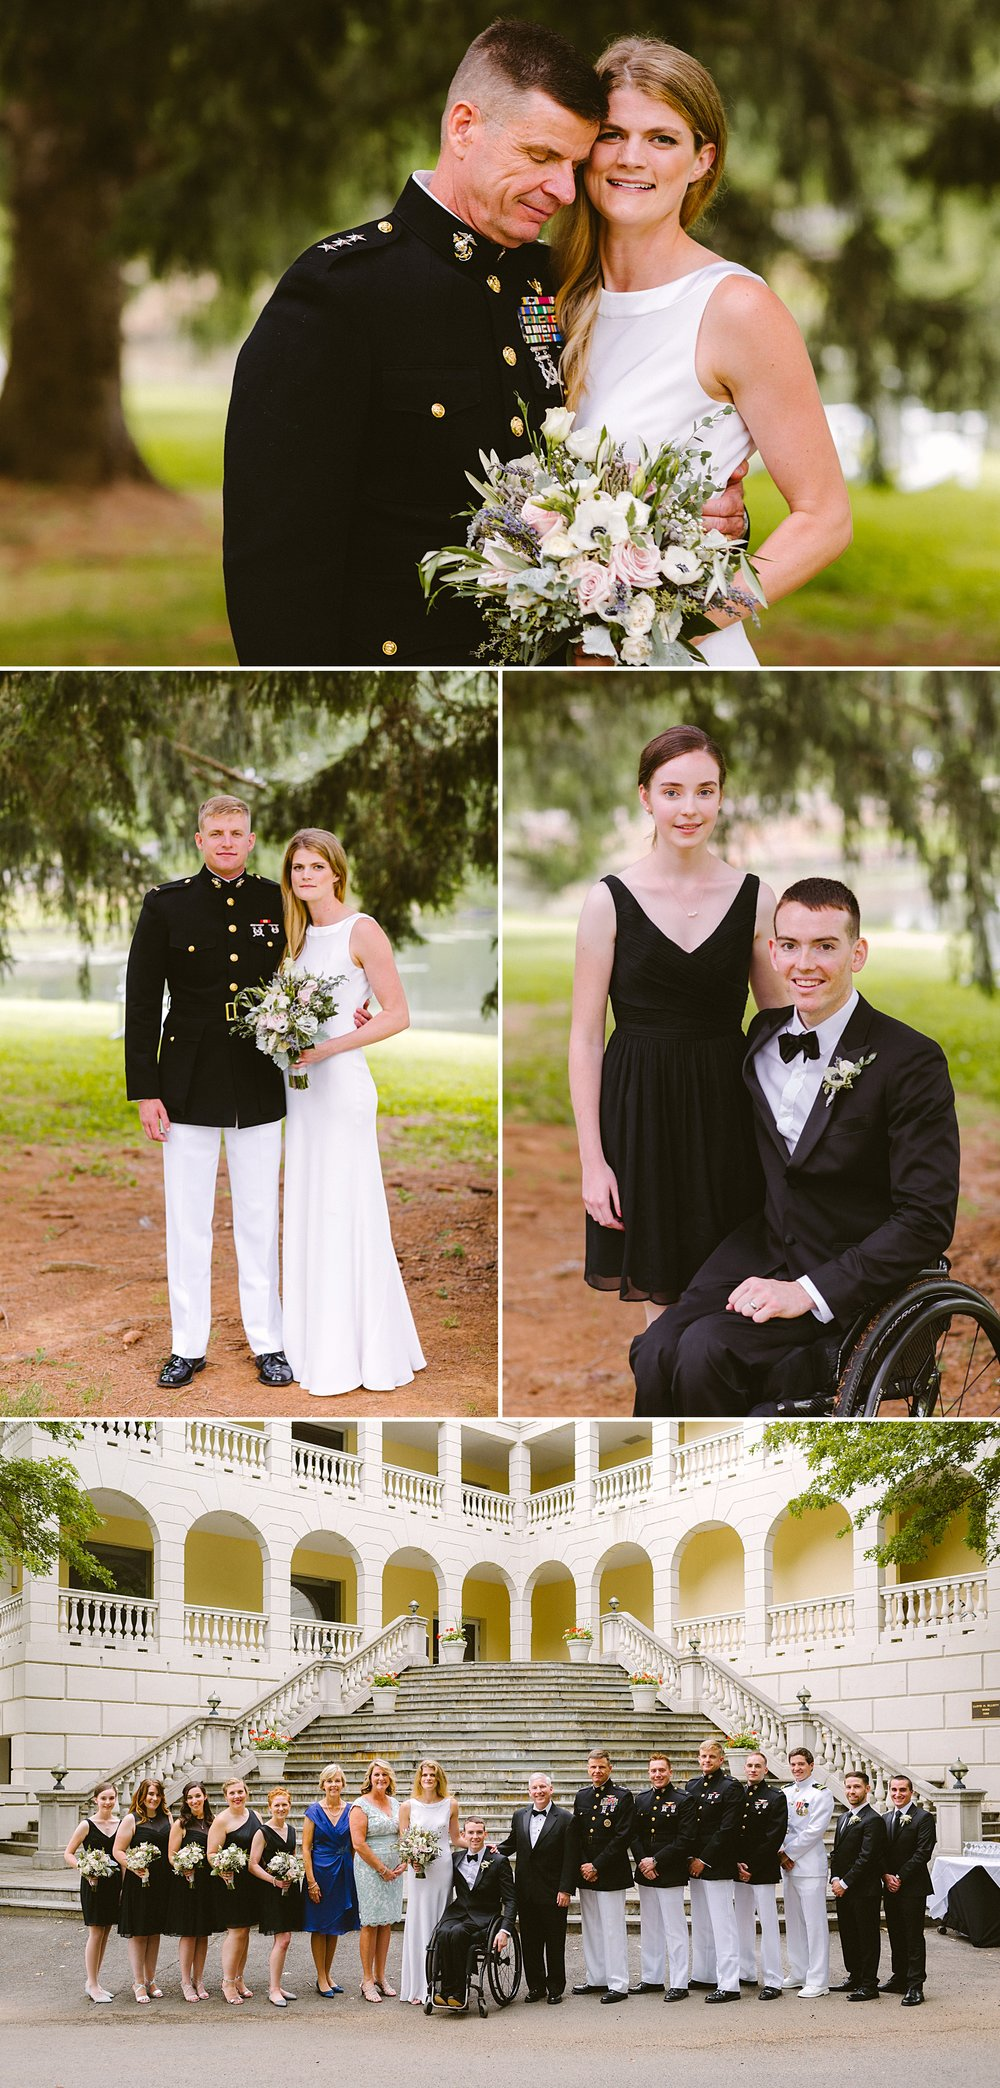 Victoria Heer Photography | Airlie Wedding | Garden Wedding | Warrenton, VA Wedding | Marine Corps Wedding | Naval Academy Wedding